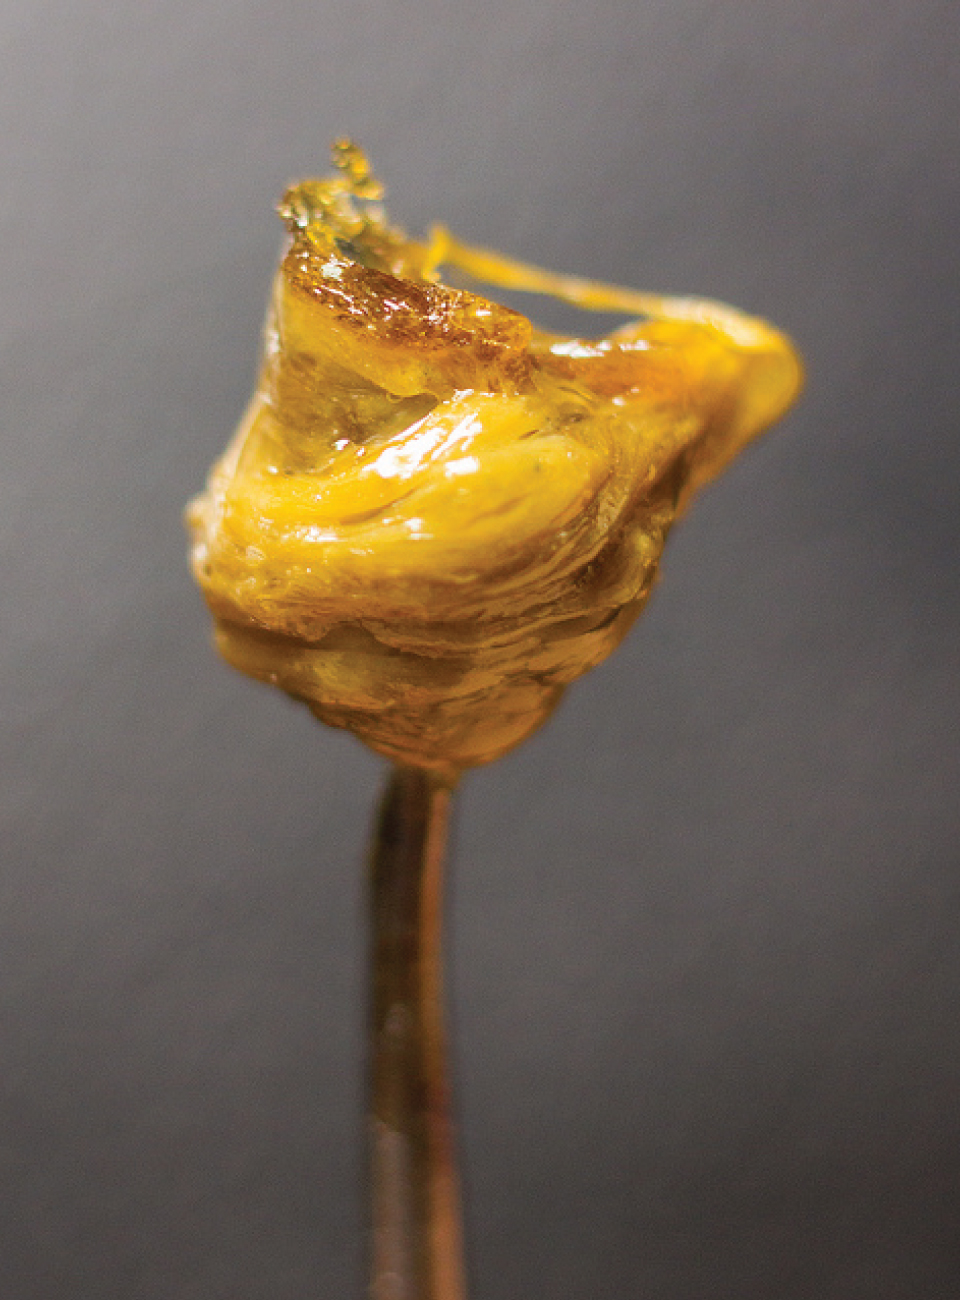 cannabis concentrates